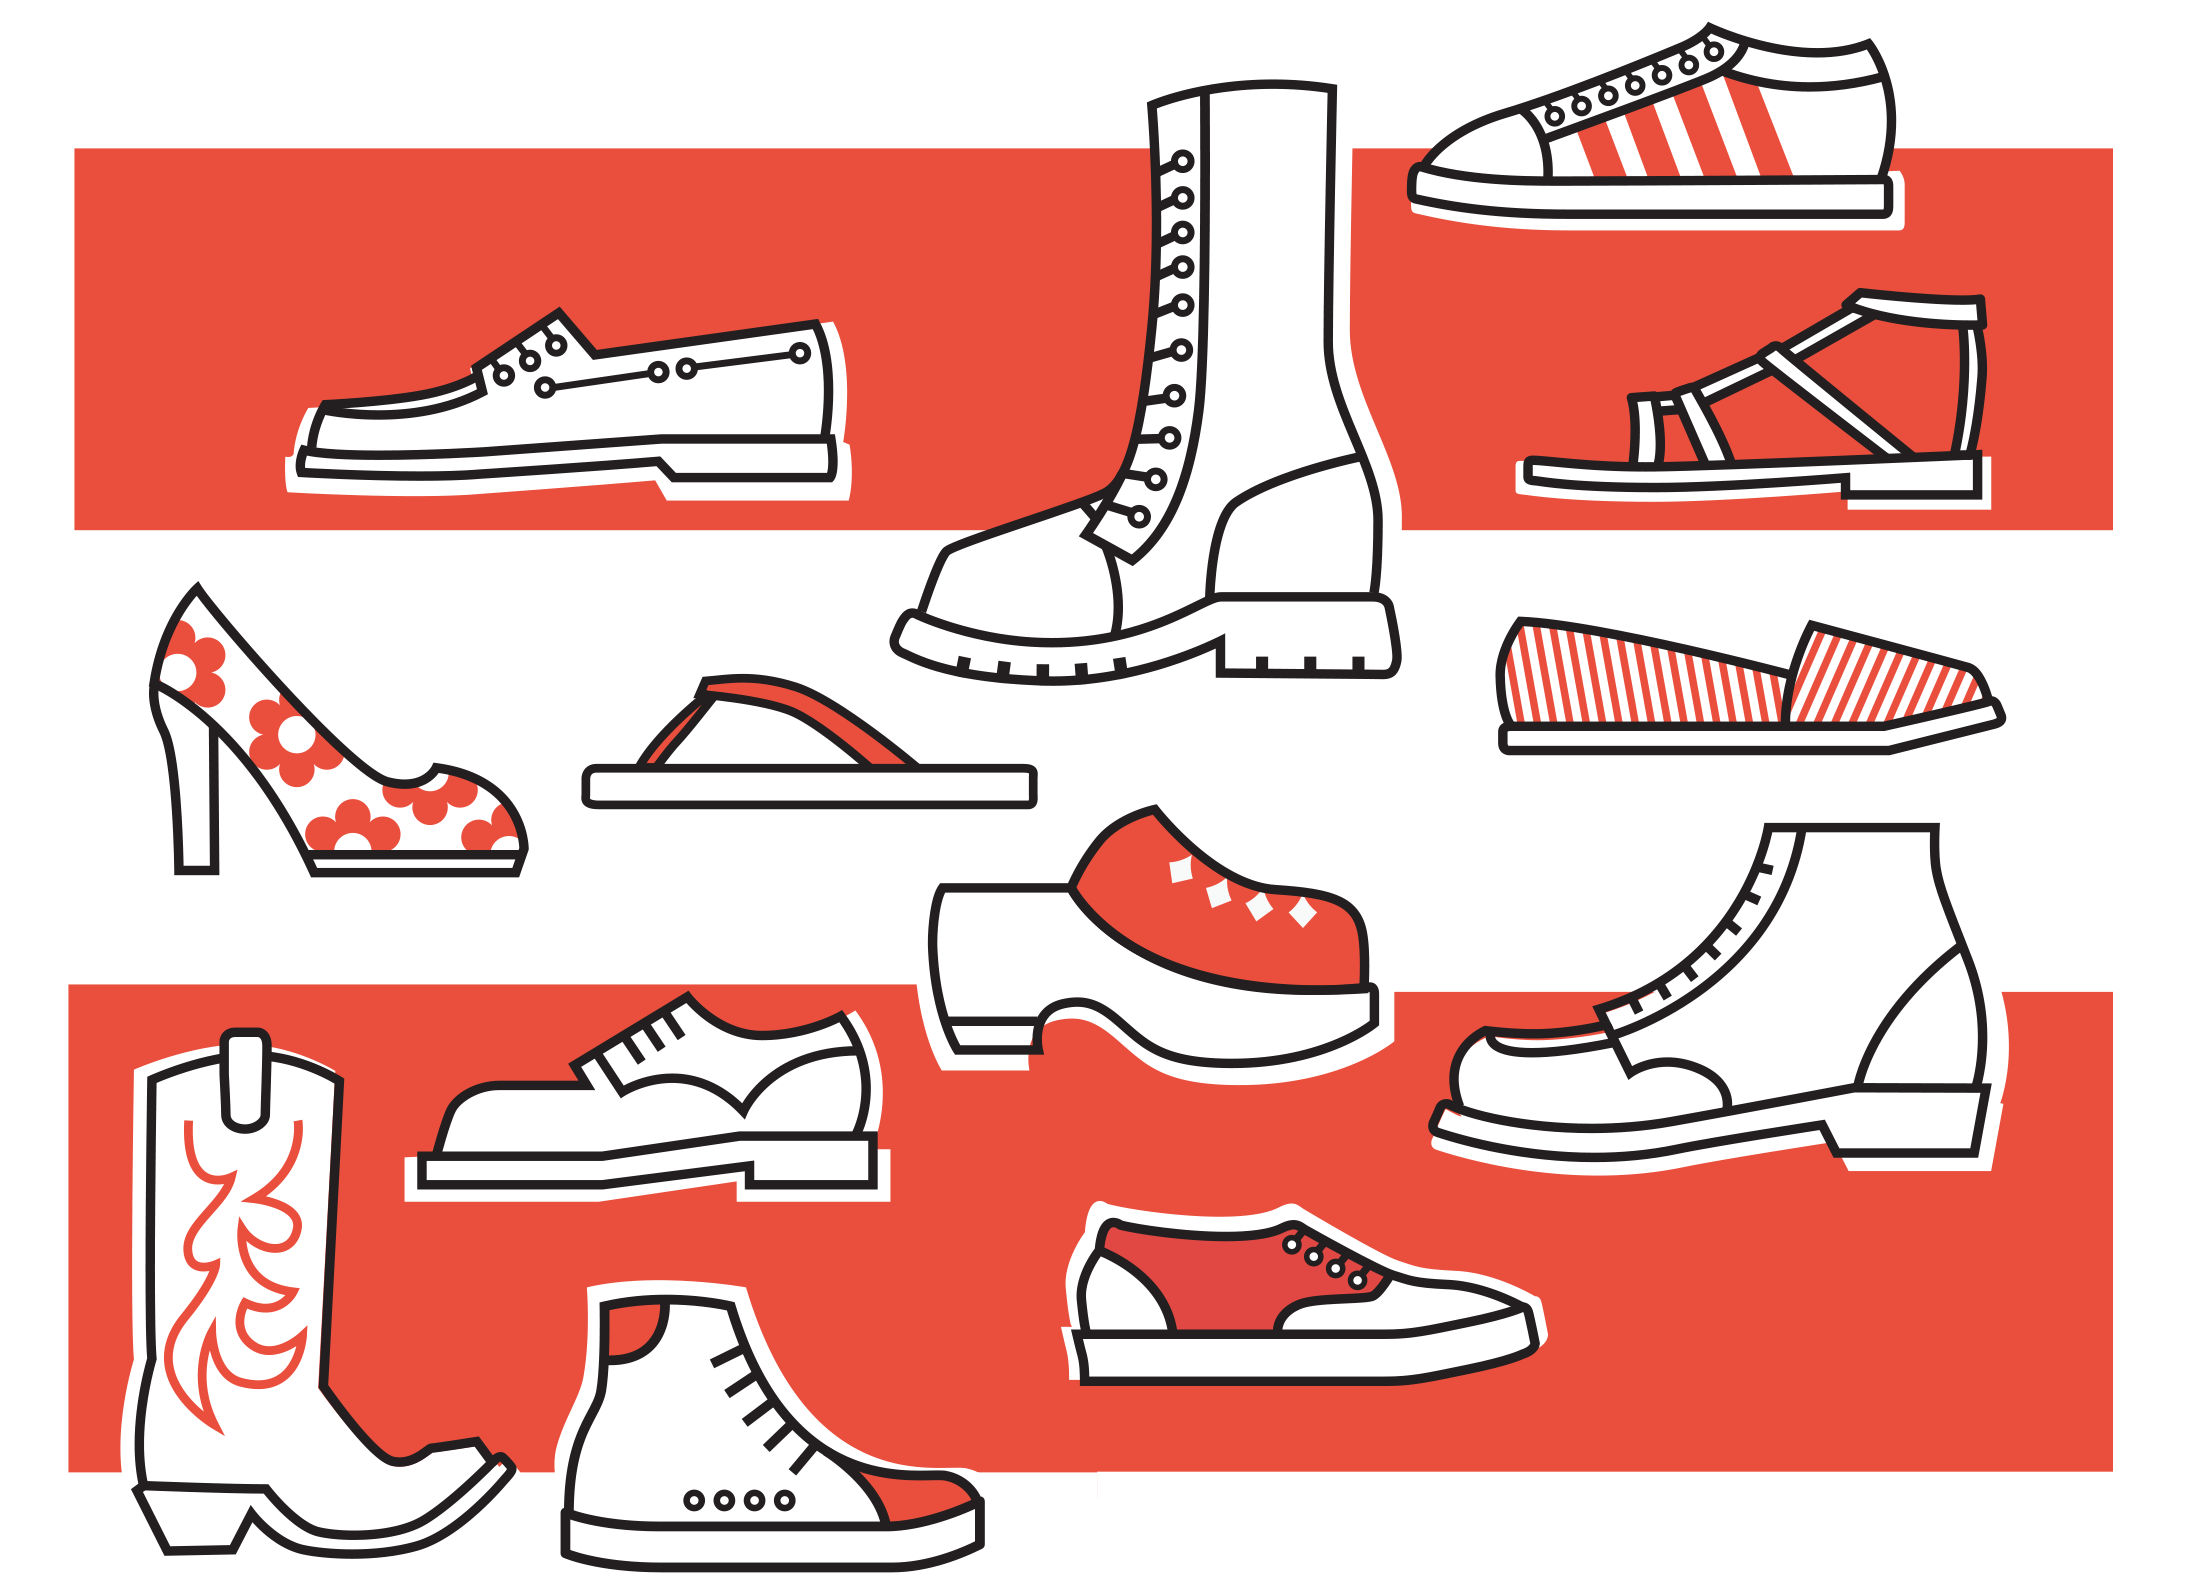 keith_shoes.png